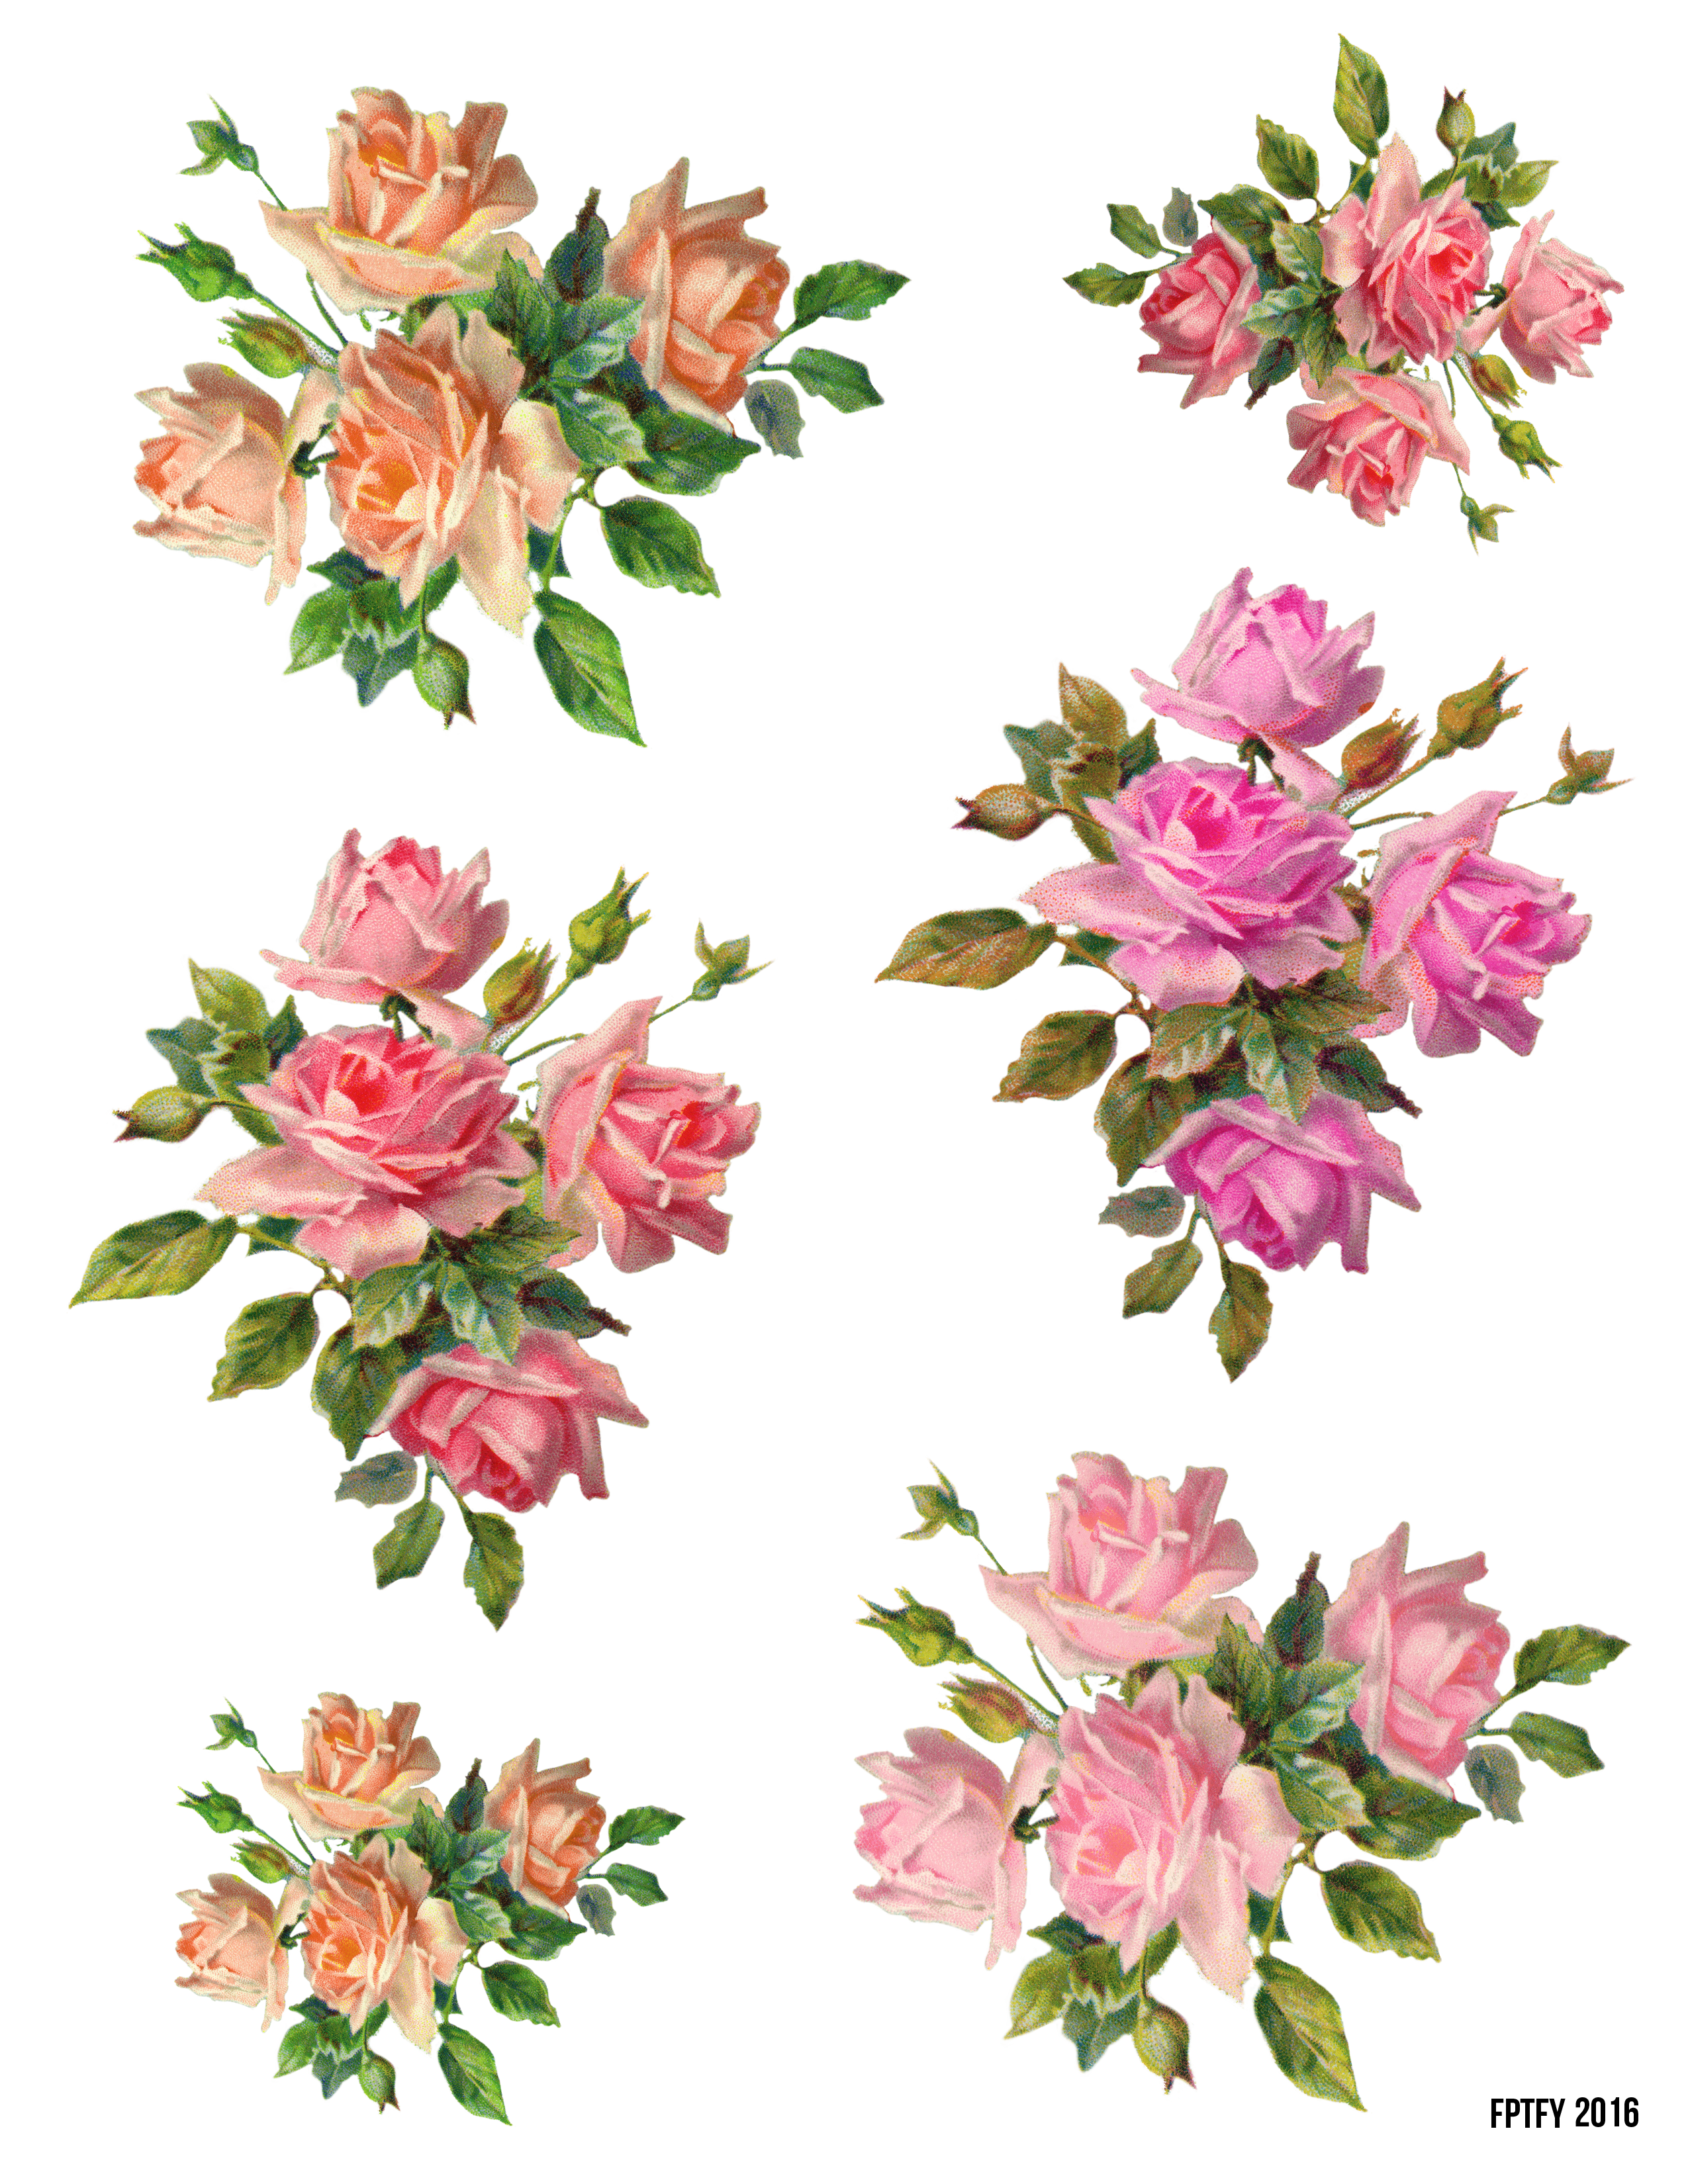 Flower collage clipart graphic royalty free www.freeprettythingsforyou.com wp-content uploads 2016 06 vintage ... graphic royalty free